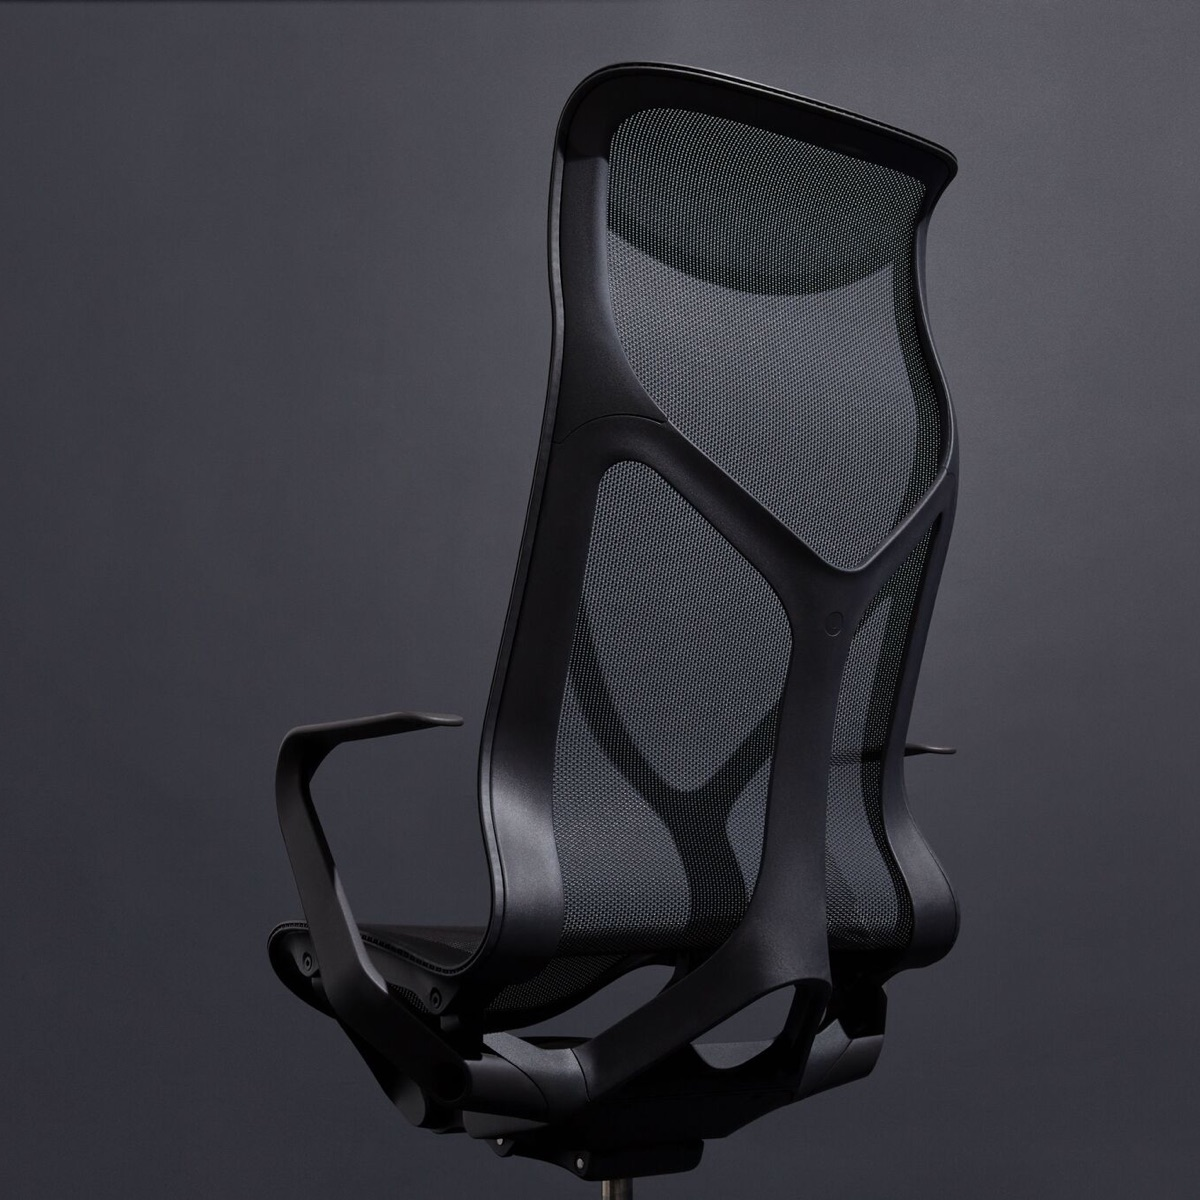 A Graphite dark grey Cosm high-back ergonomic desk chair with fixed arms on a dark grey background.